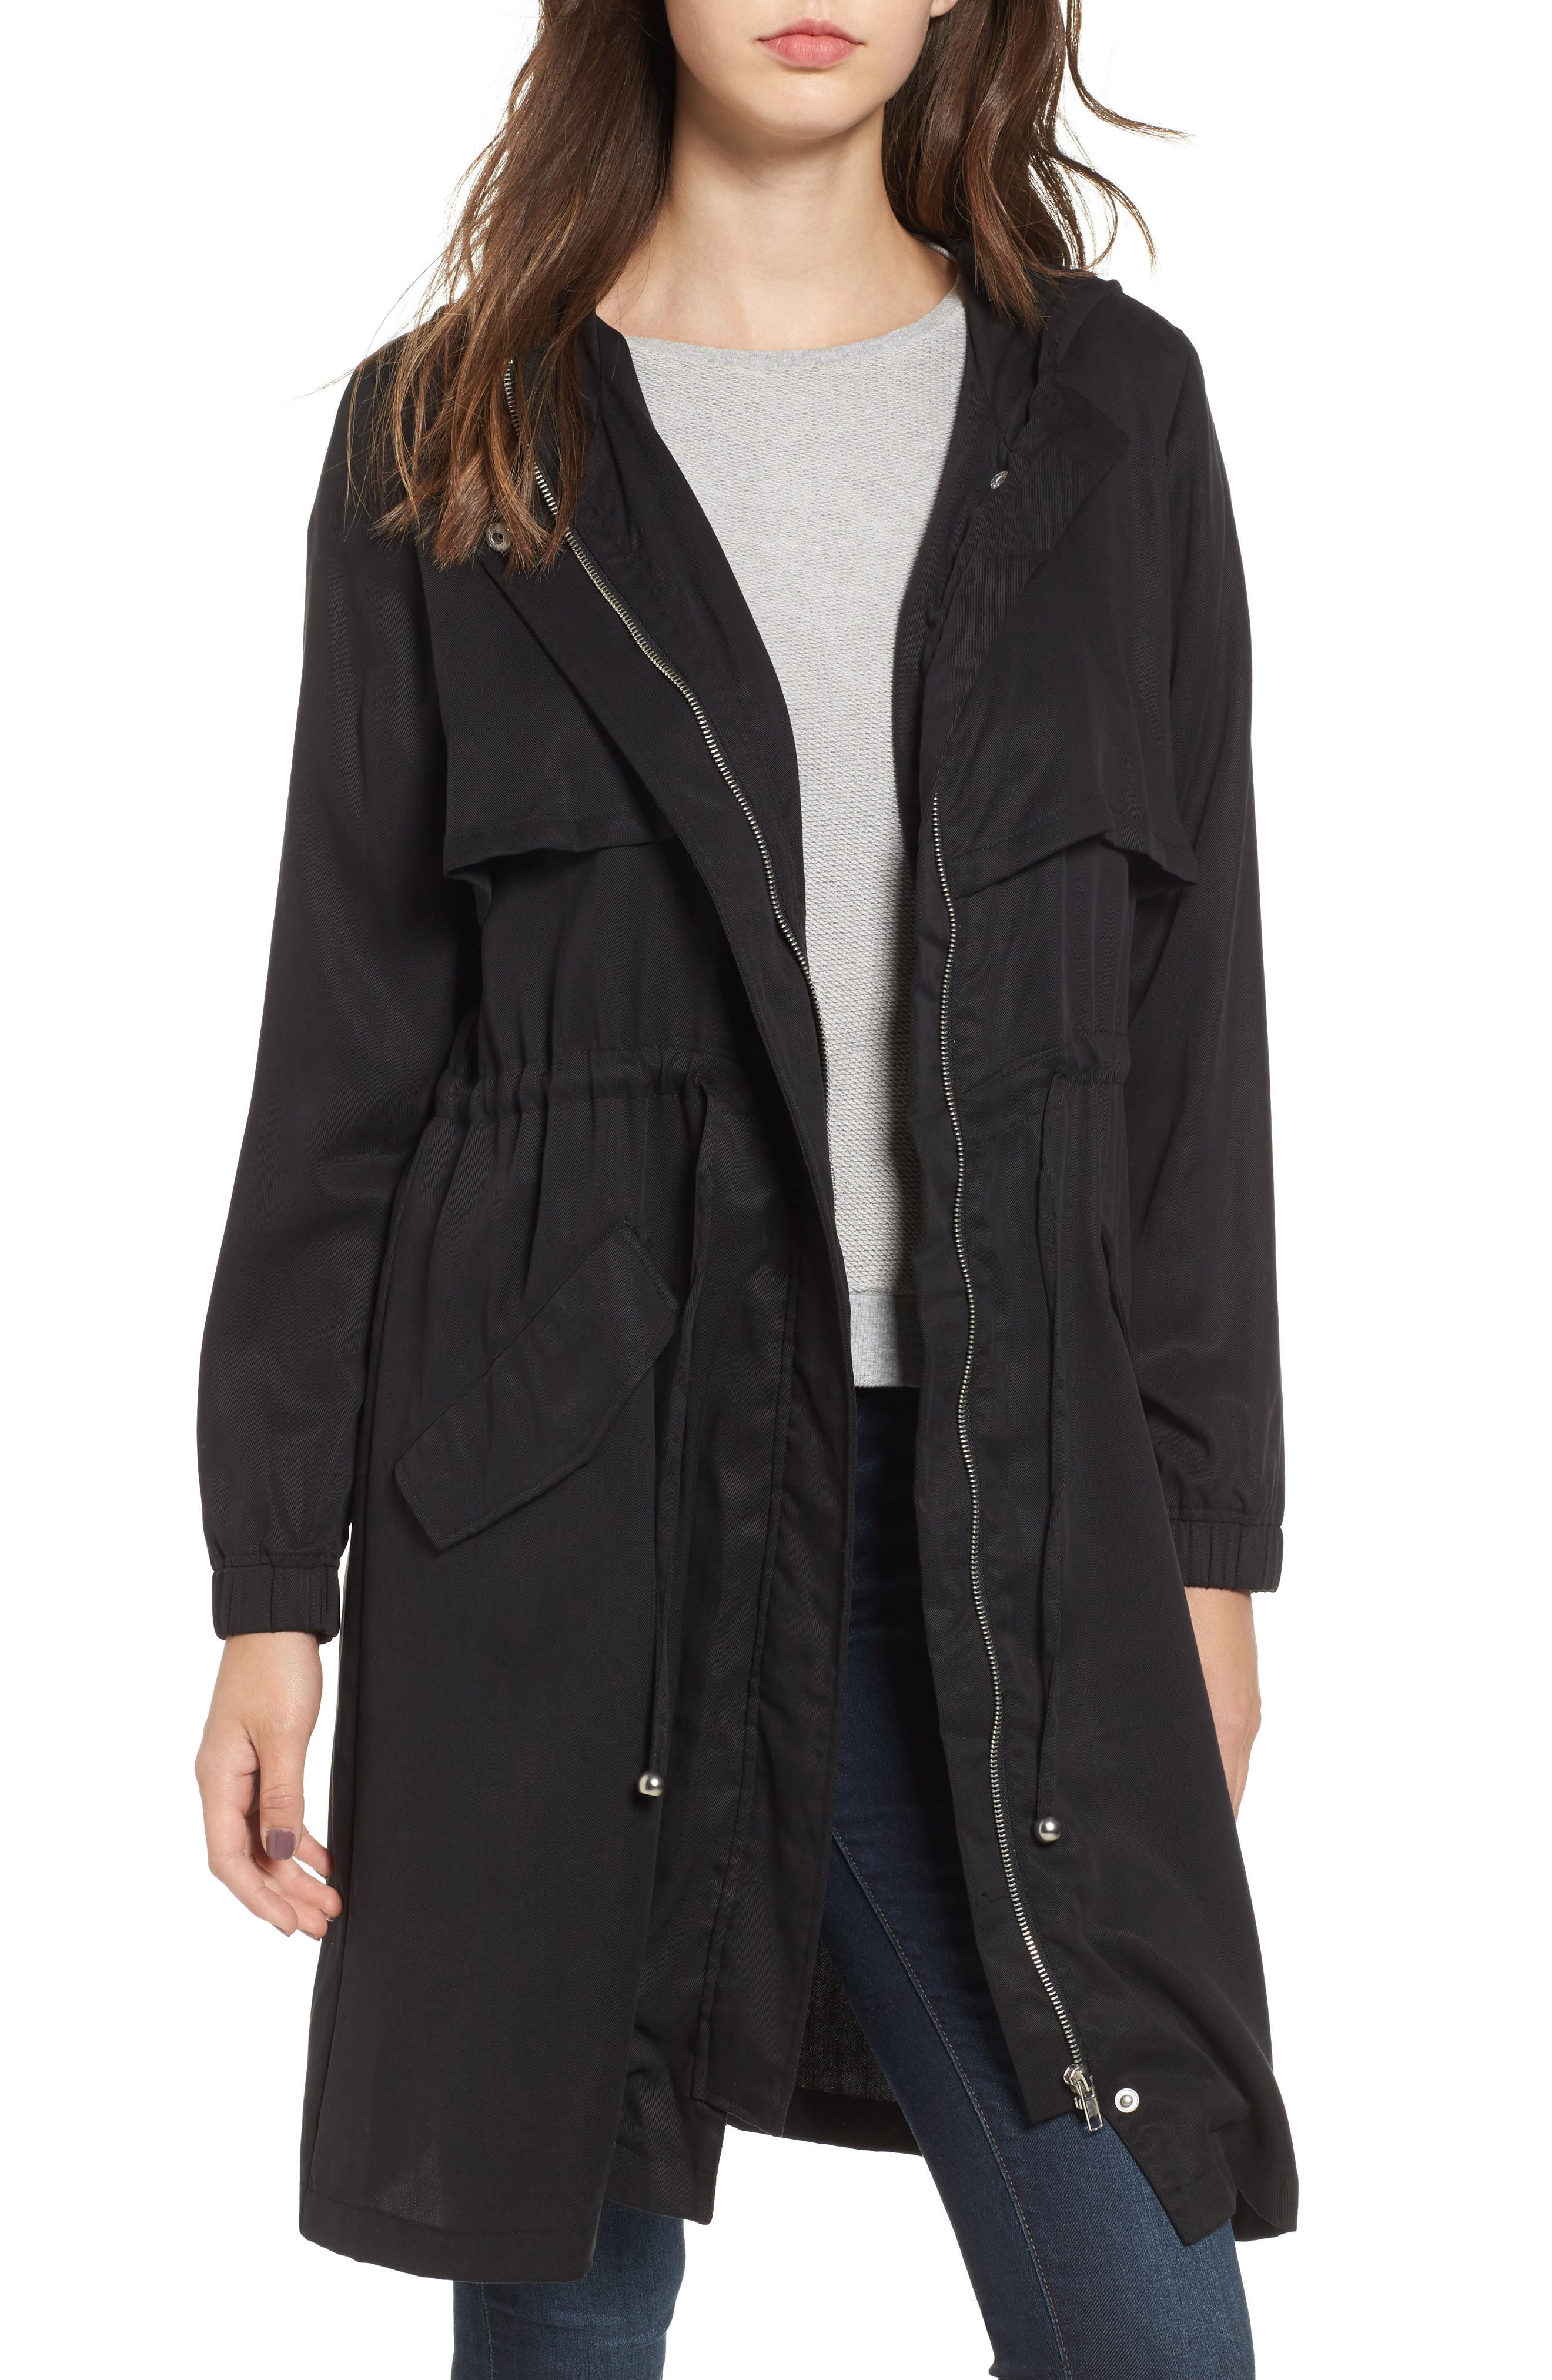 Tyler Hooded Trench Coat,                         Main,                         color, Black